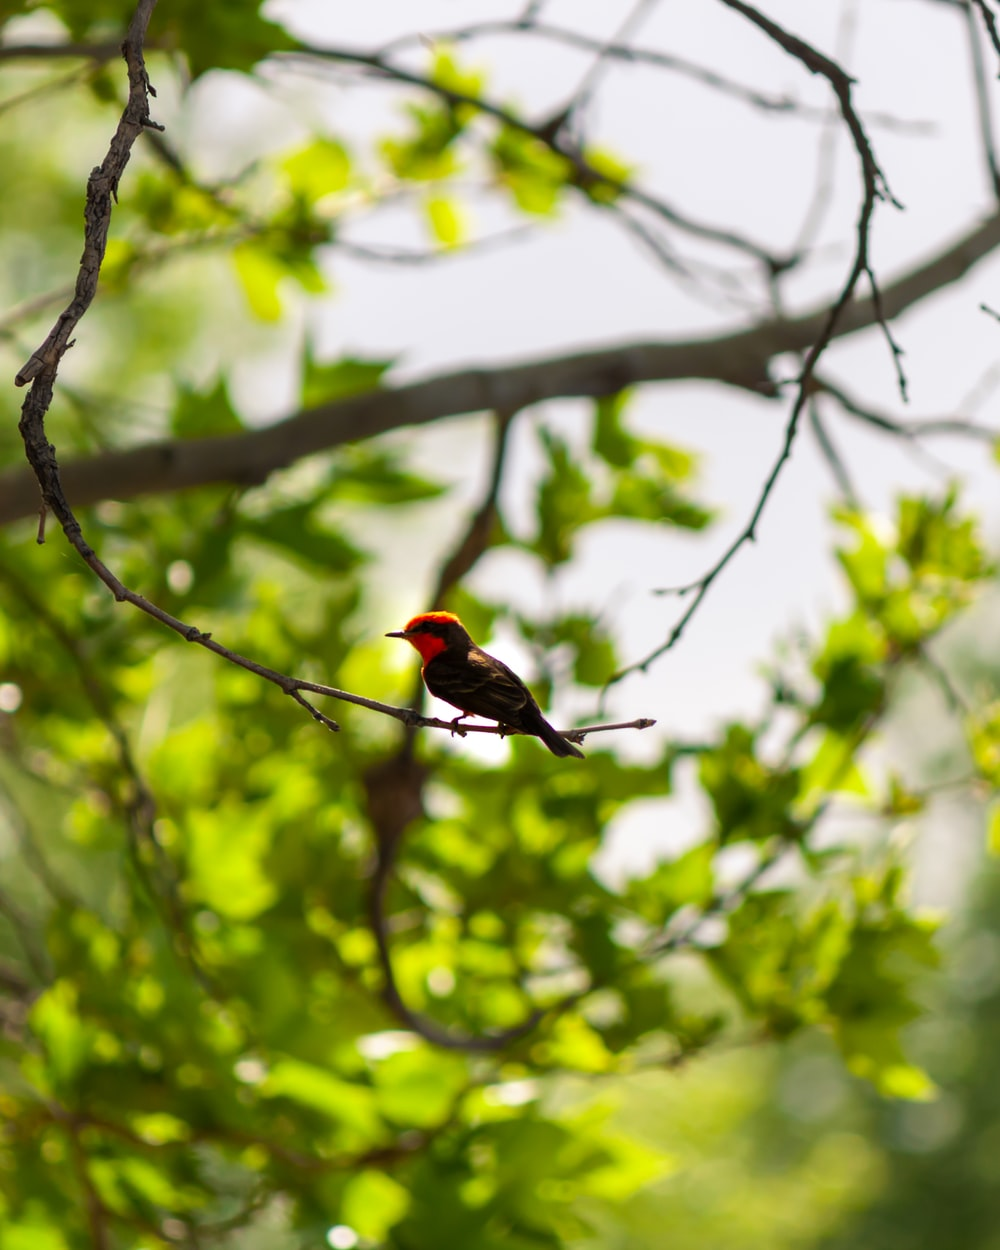 red and brown bird in a branch during daytime